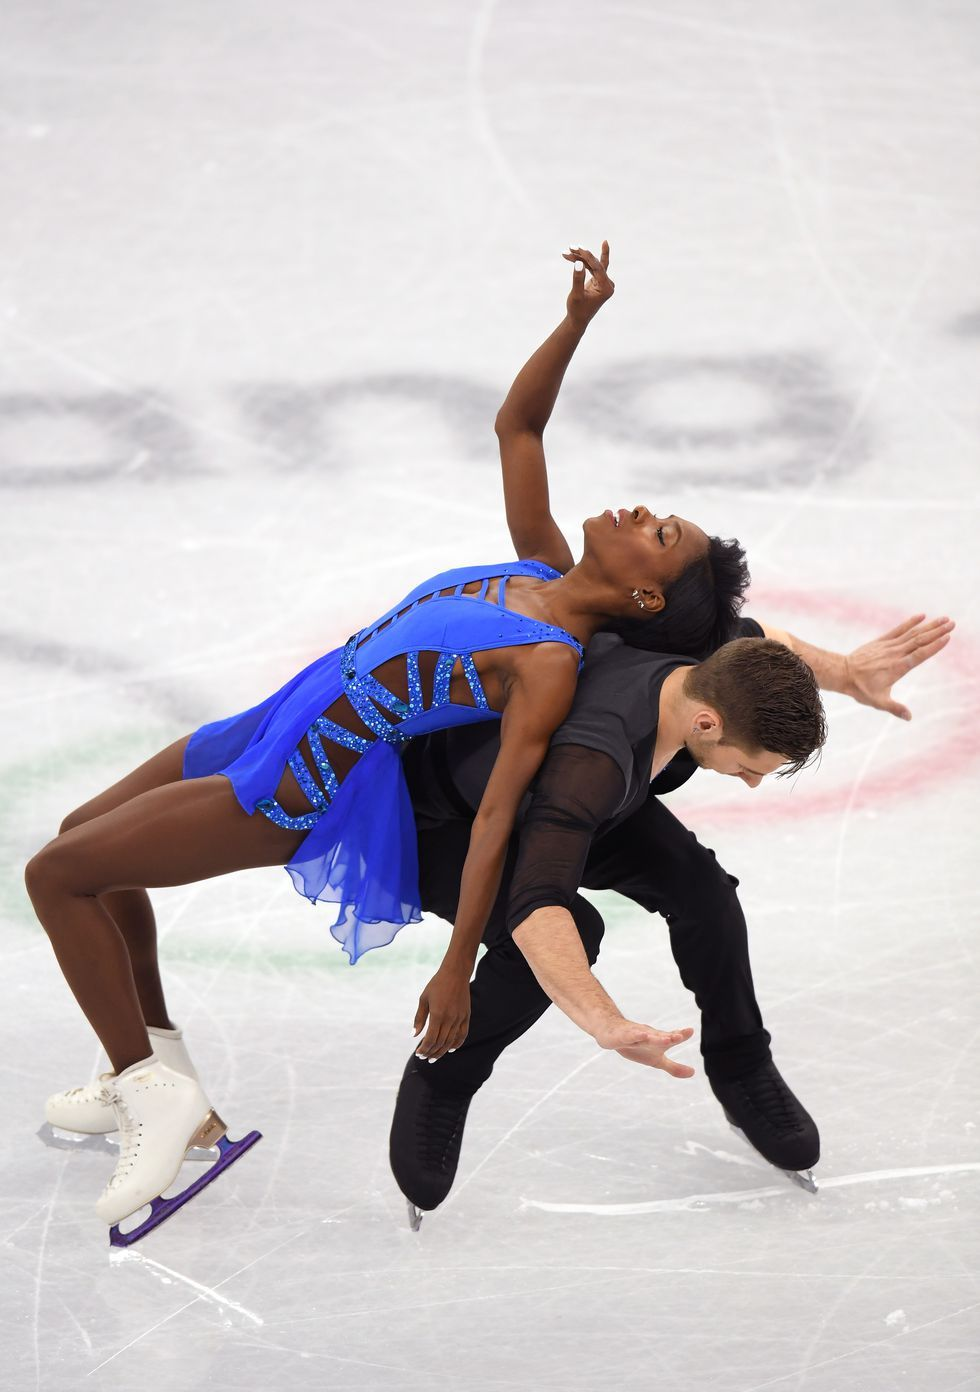 40 Best Skating Costumes - 2018 Winter Olympics Bedazzled Costumes f1f986d40